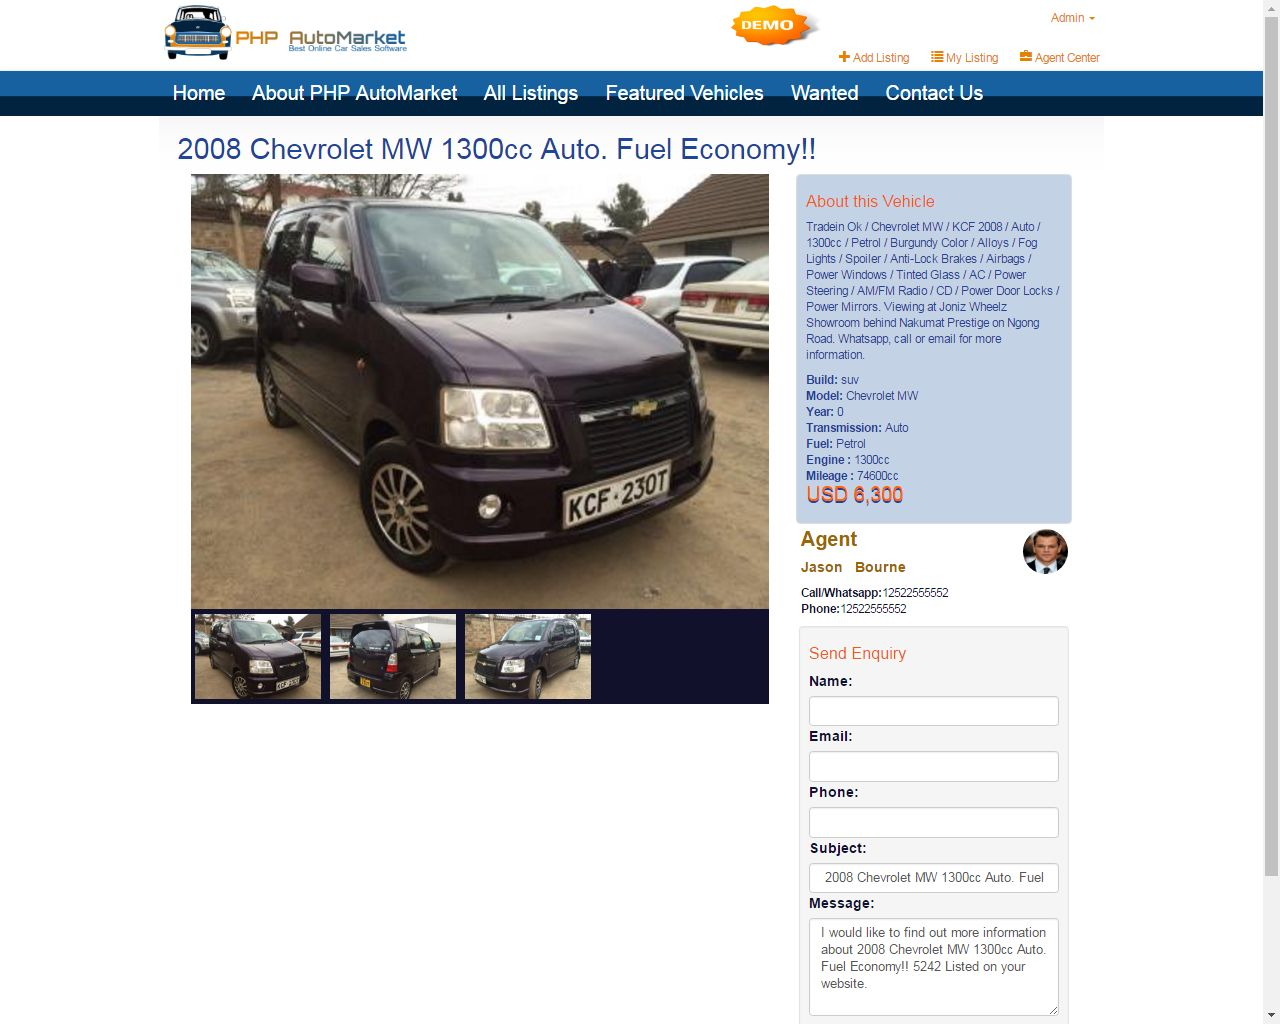 PHP AutoMarket - Car Marketplace PHP Script Screenshot 3